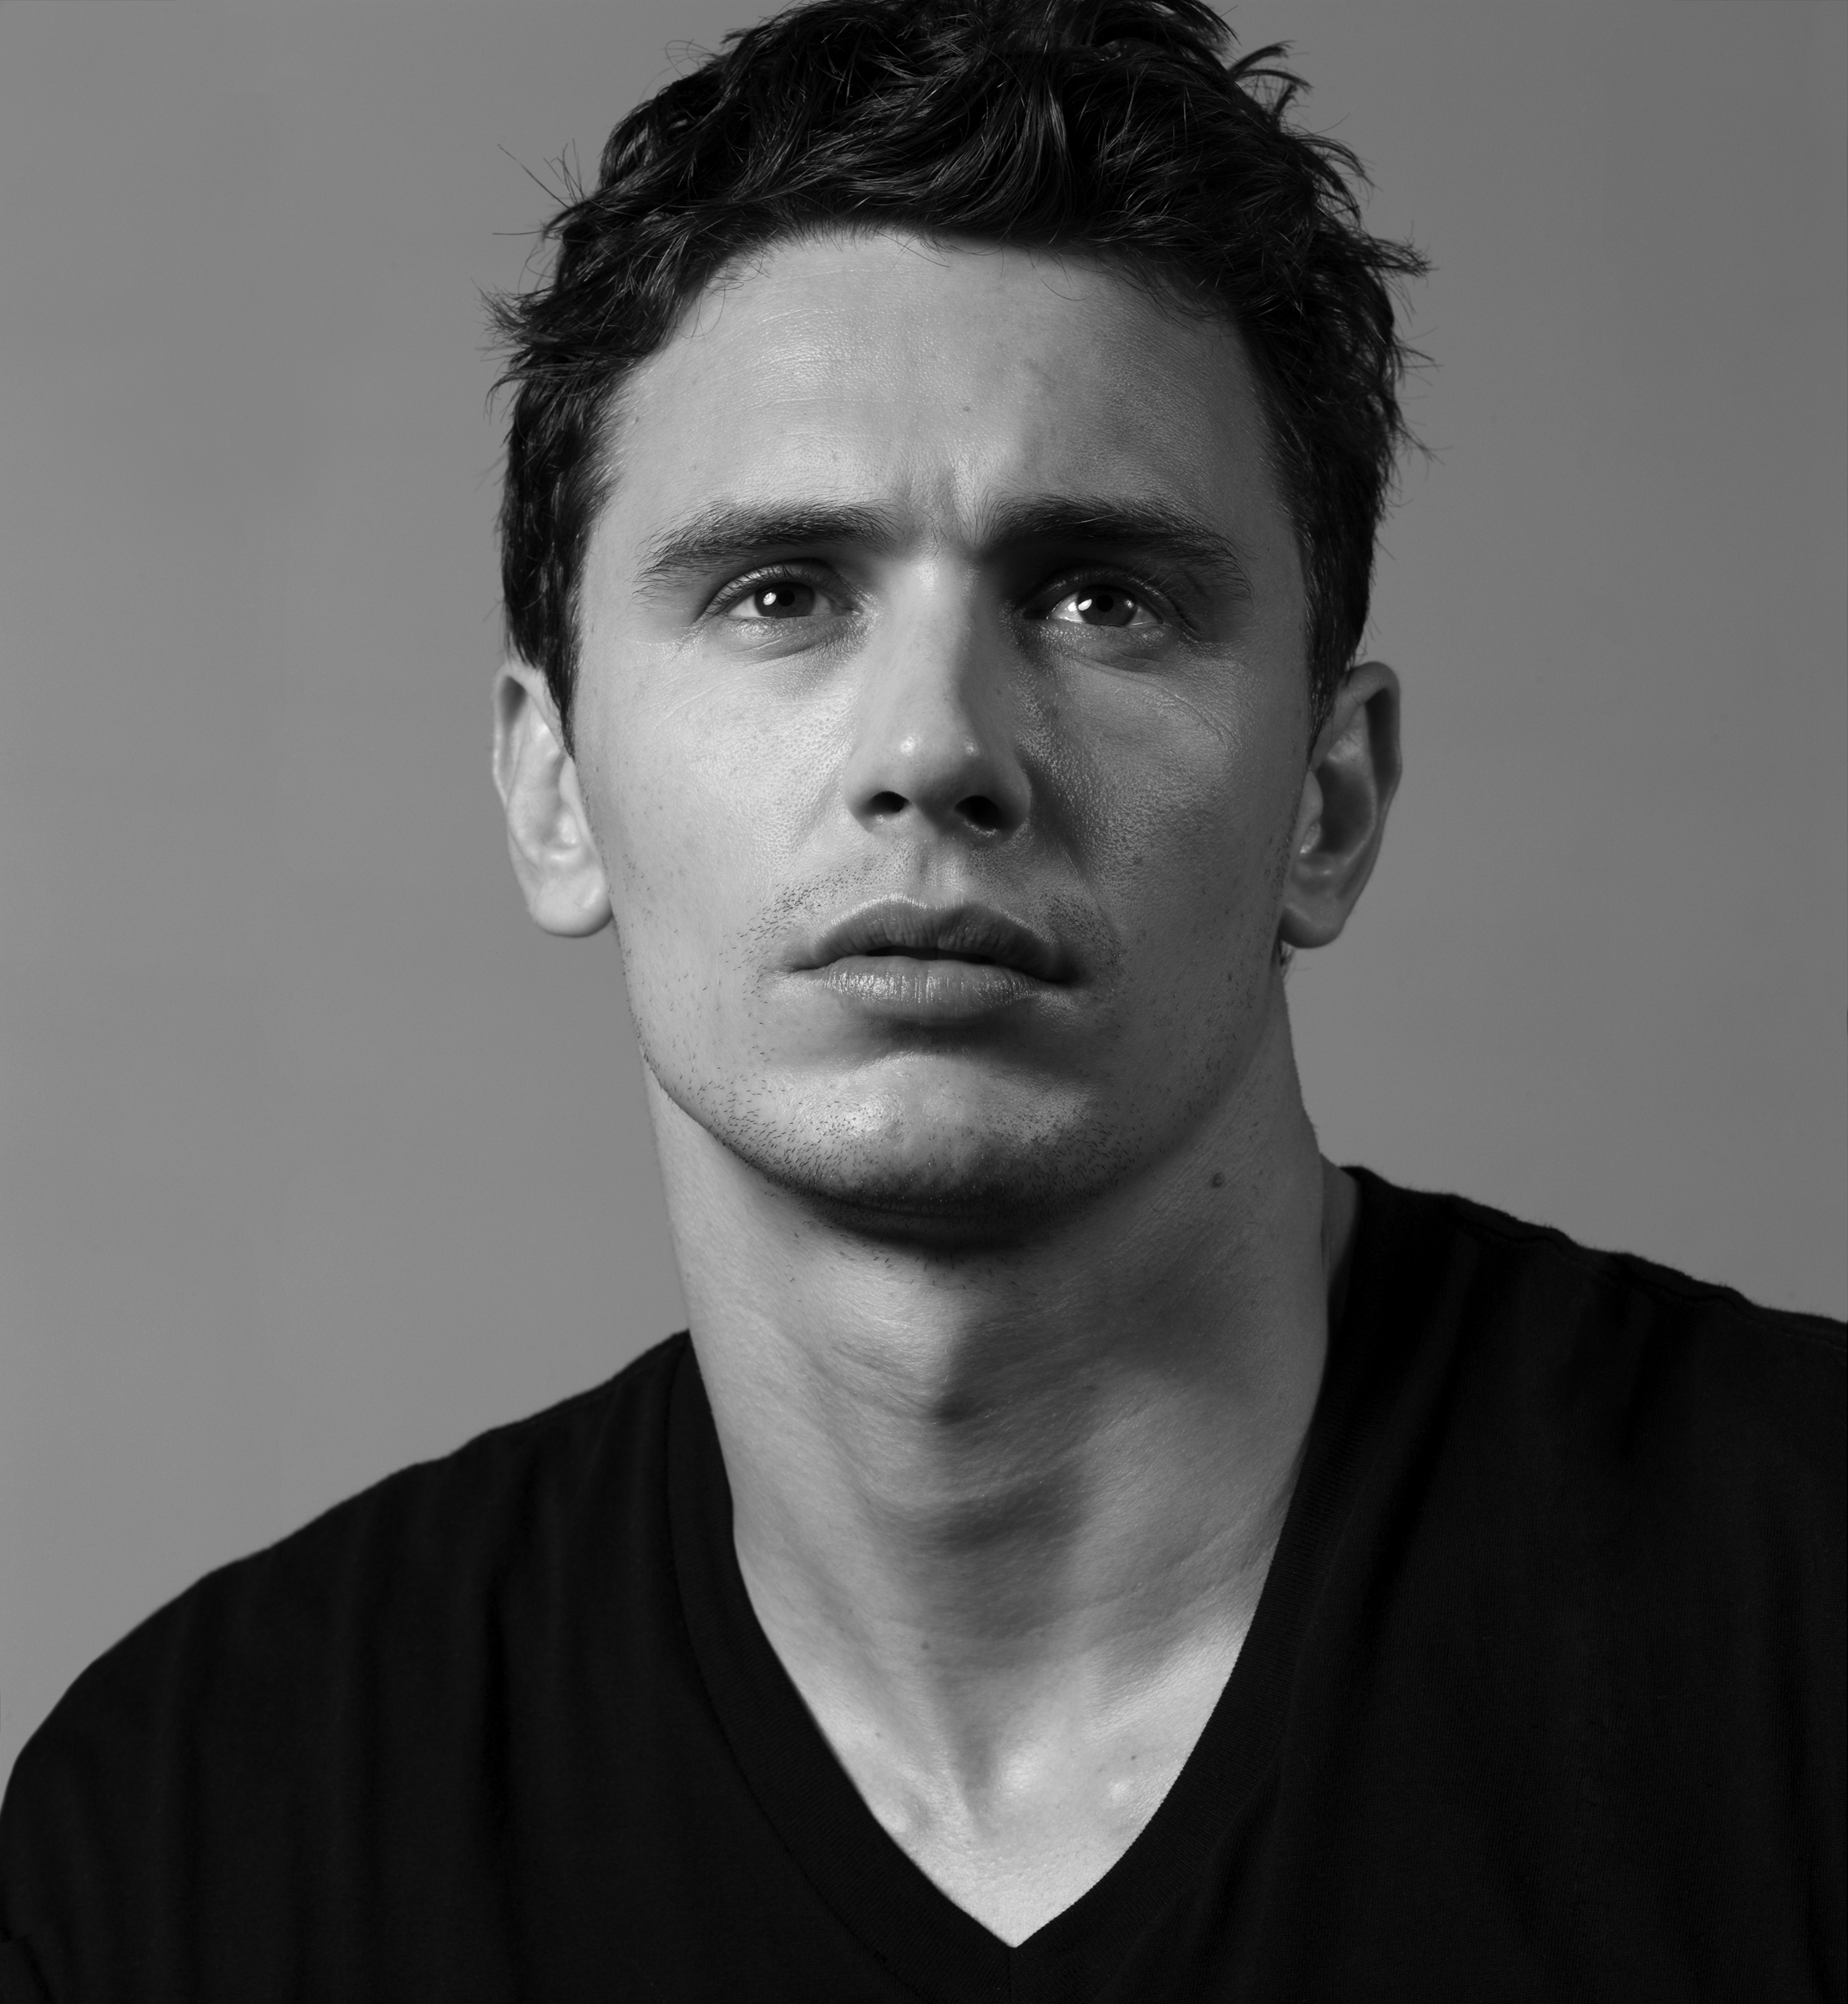 james franco why him